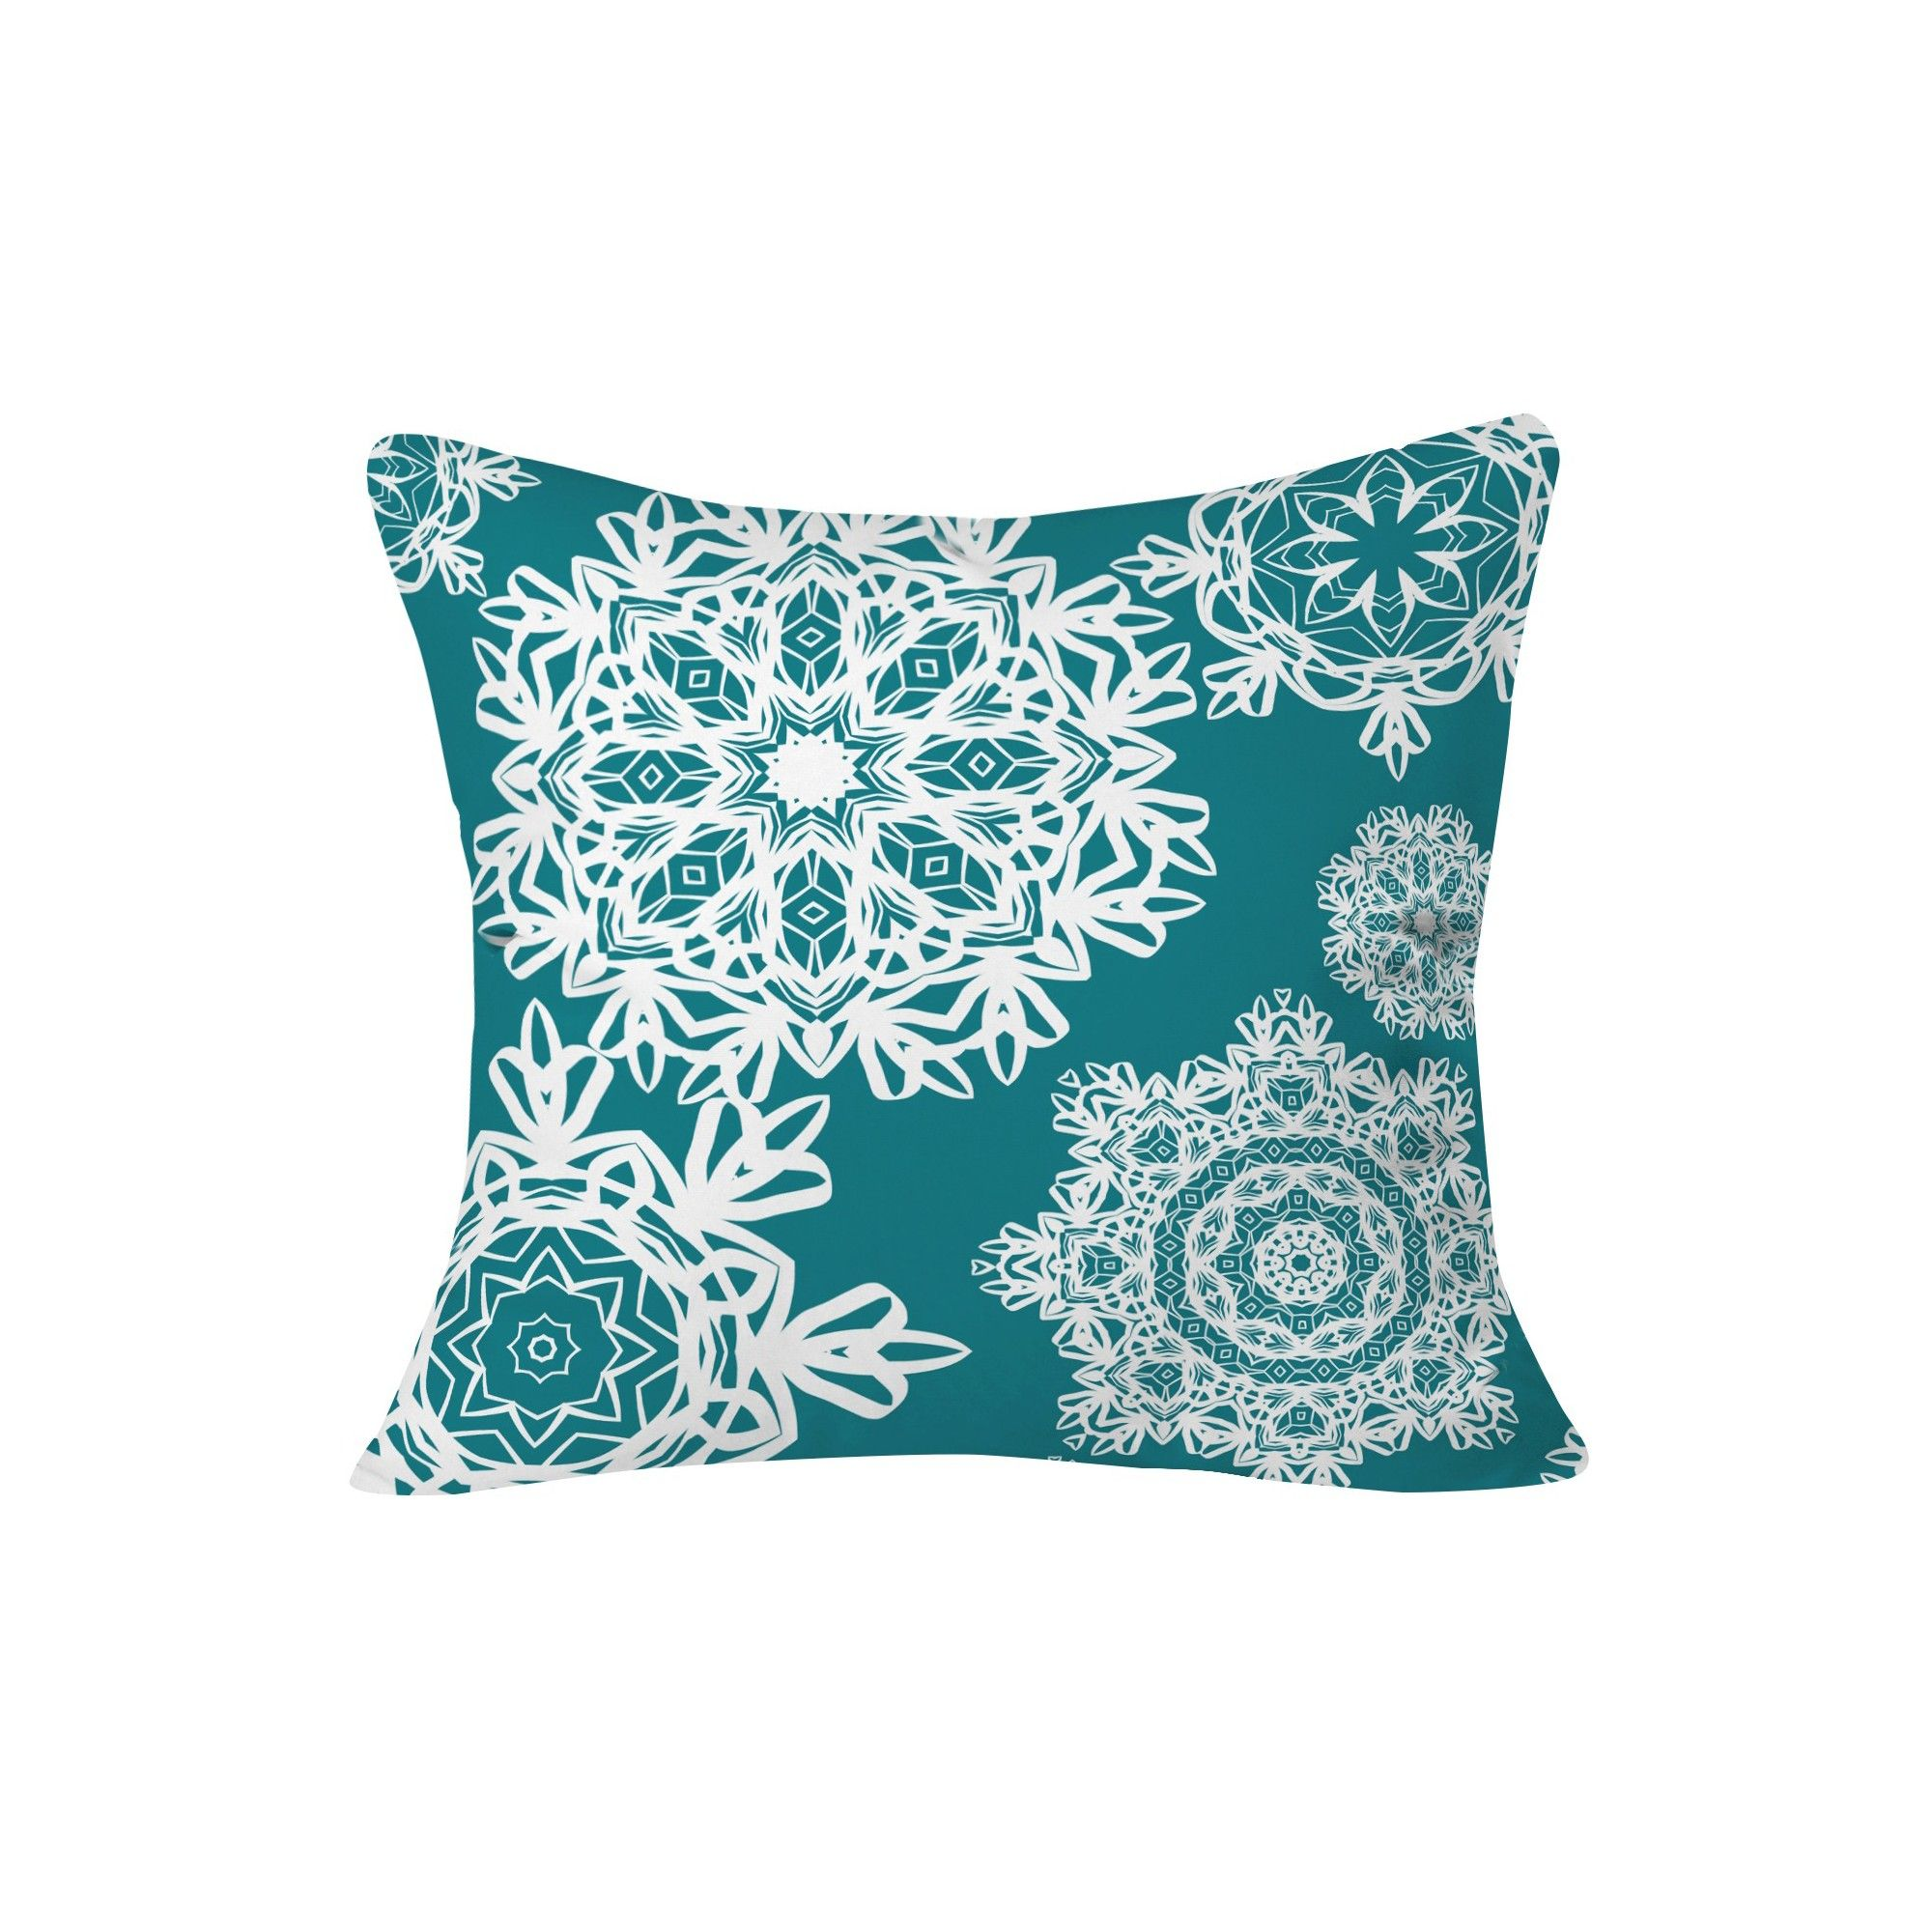 Washing Throw Pillows